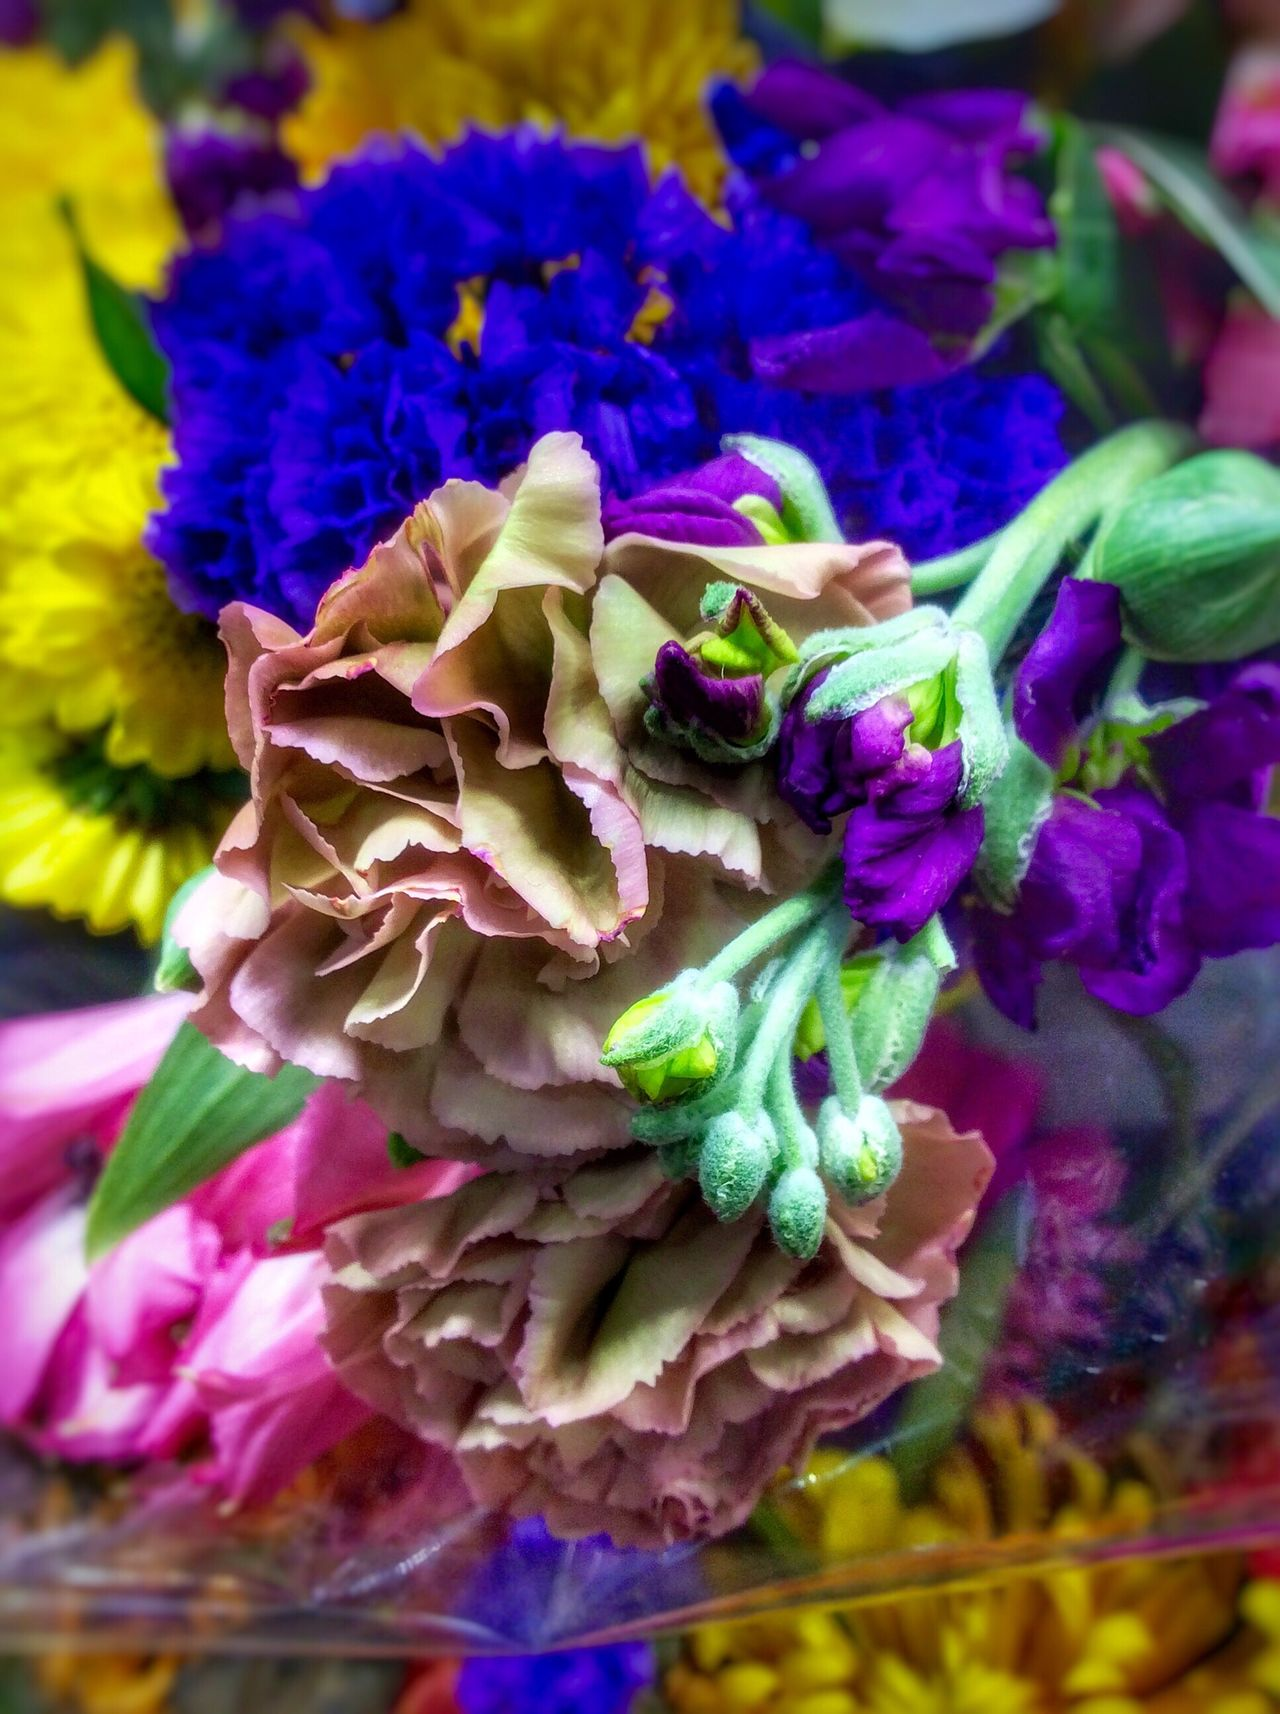 Droopy, dying, colorful flowers for sale. Droopy Droopy Flowers EyeEmNewHere Artiseverywhere Multi Colored Fragility Petal Beauty In Nature Freshness Nature Growth Flower Head Plant Purple Close-up Day No People Fresh Cut Flowers Bouquet